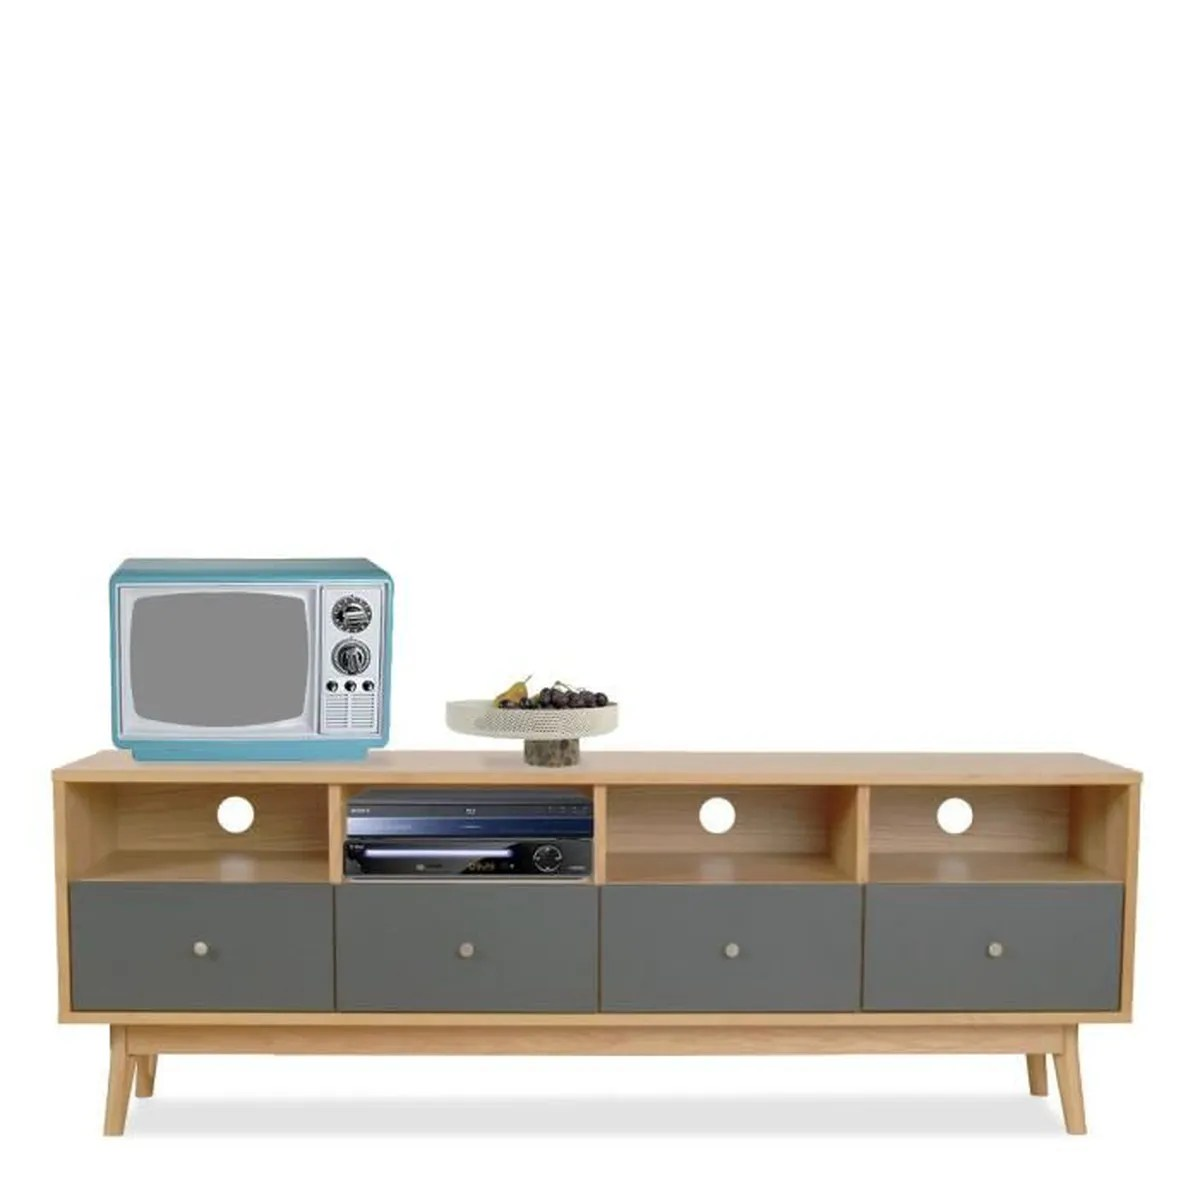 Meuble Design Scandinave Meuble Tv Design Scandinave 4 Tiroirs Skoll Couleur Gris